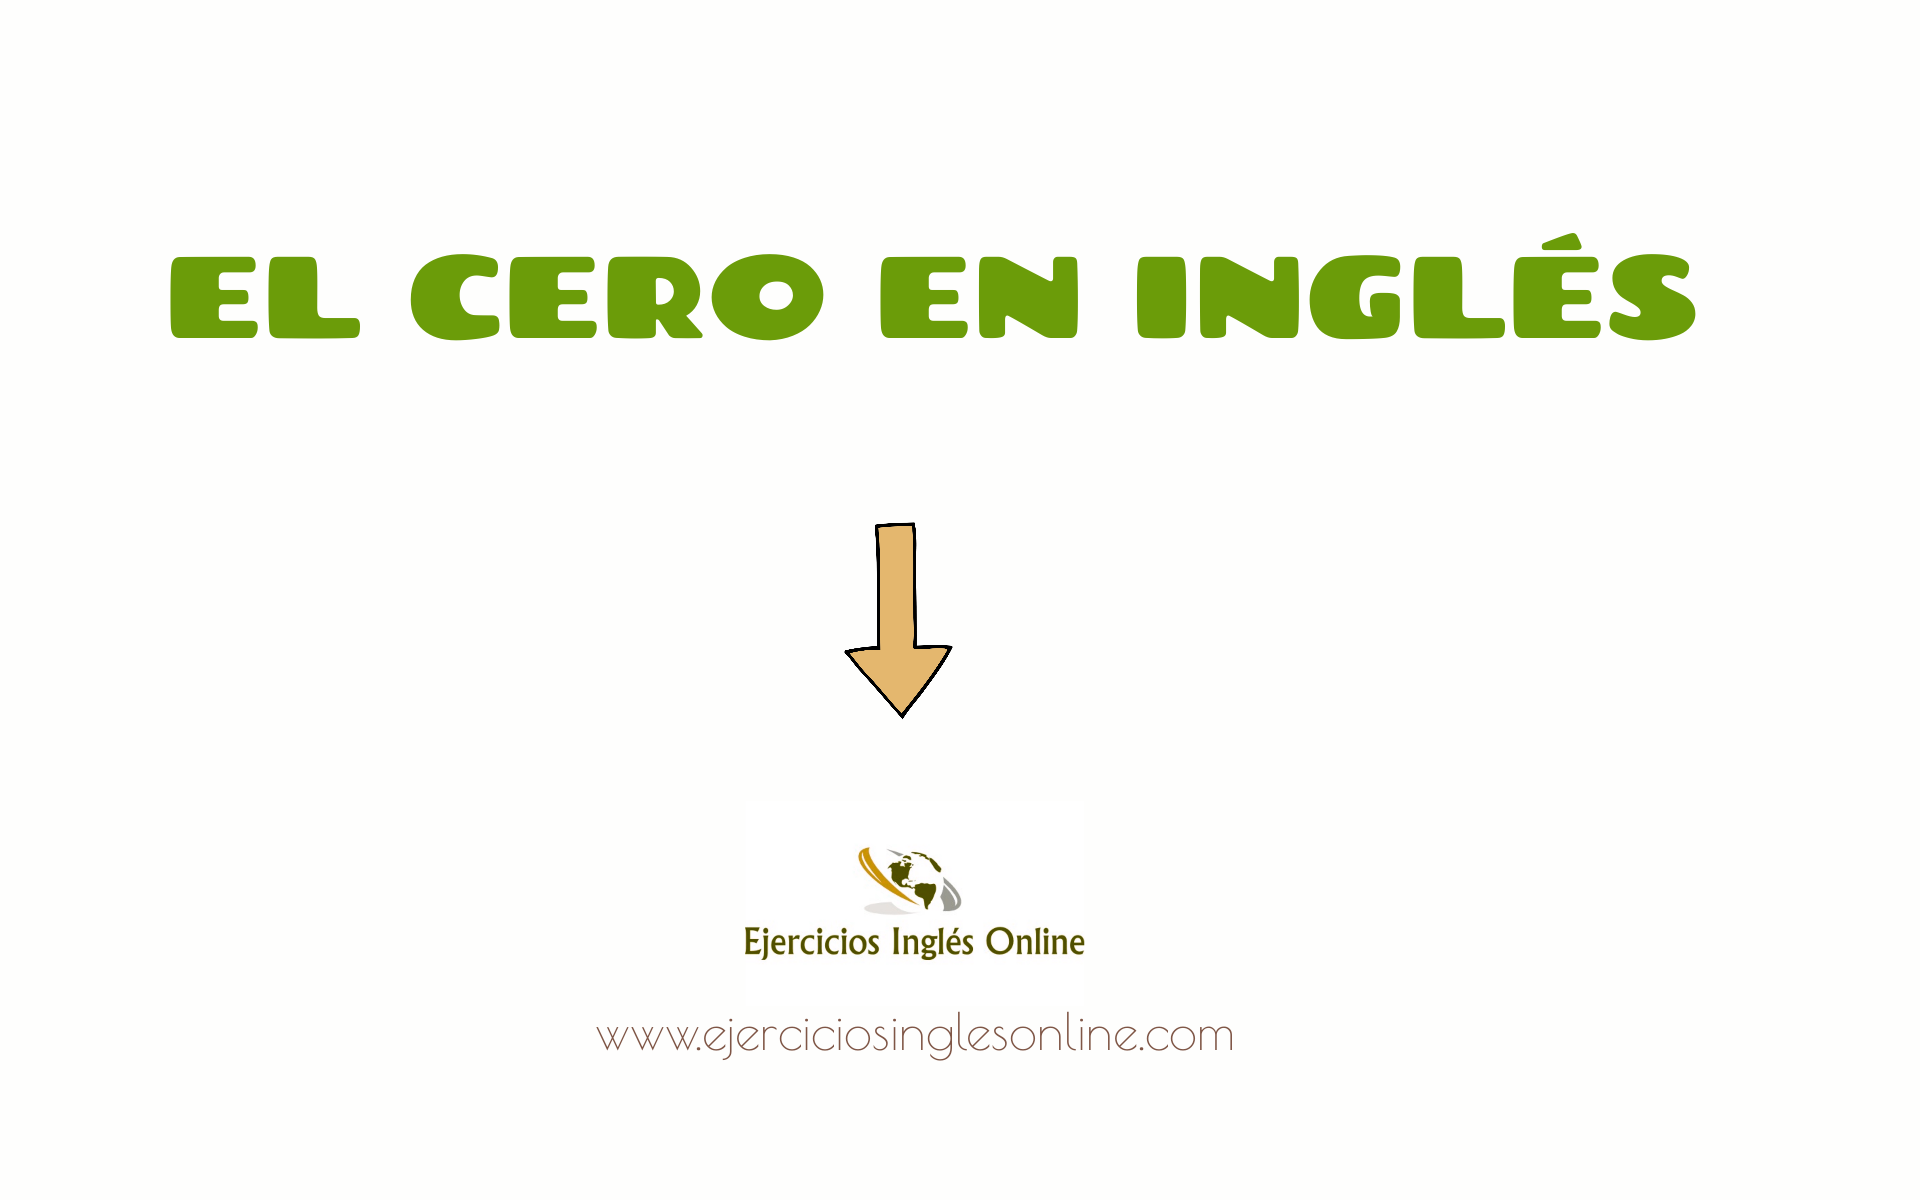 ejercicios ingles online